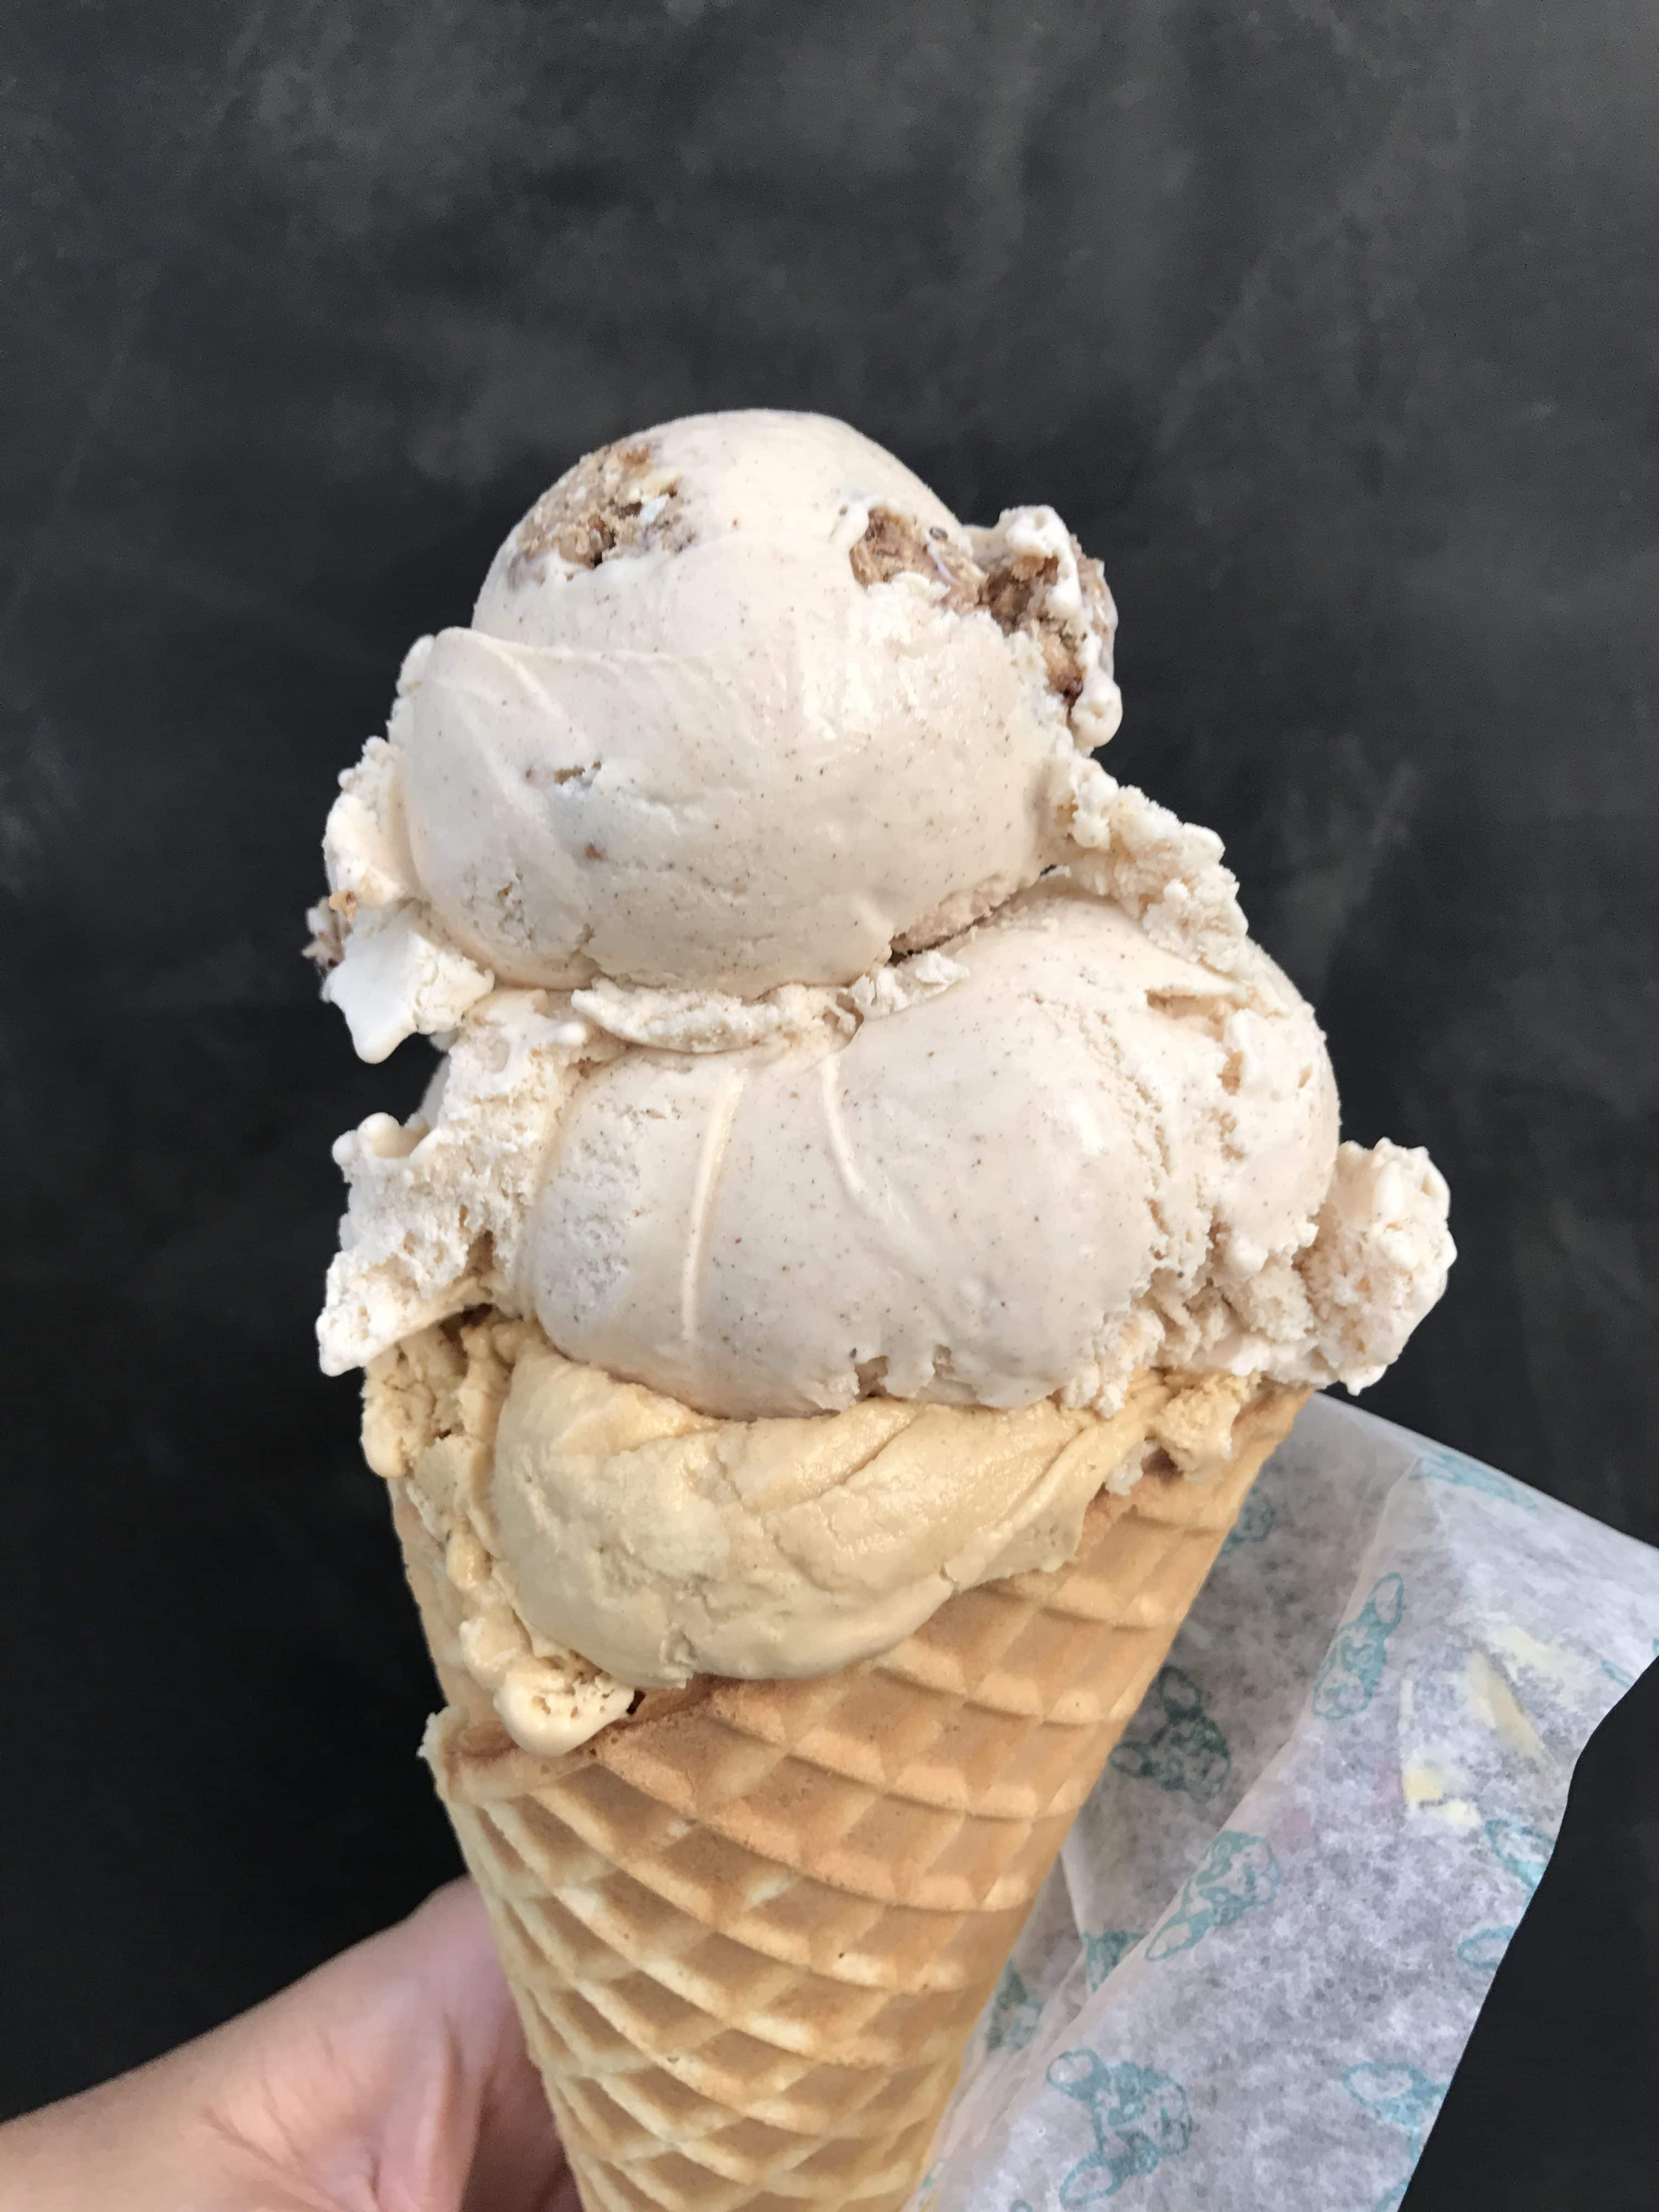 Best Places to Eat in Orange County. The most popular restaurants, food, and dessert in California. www.modernhoney.com. Highest rated places to eat in Orange County California. Best ice cream in the OC,